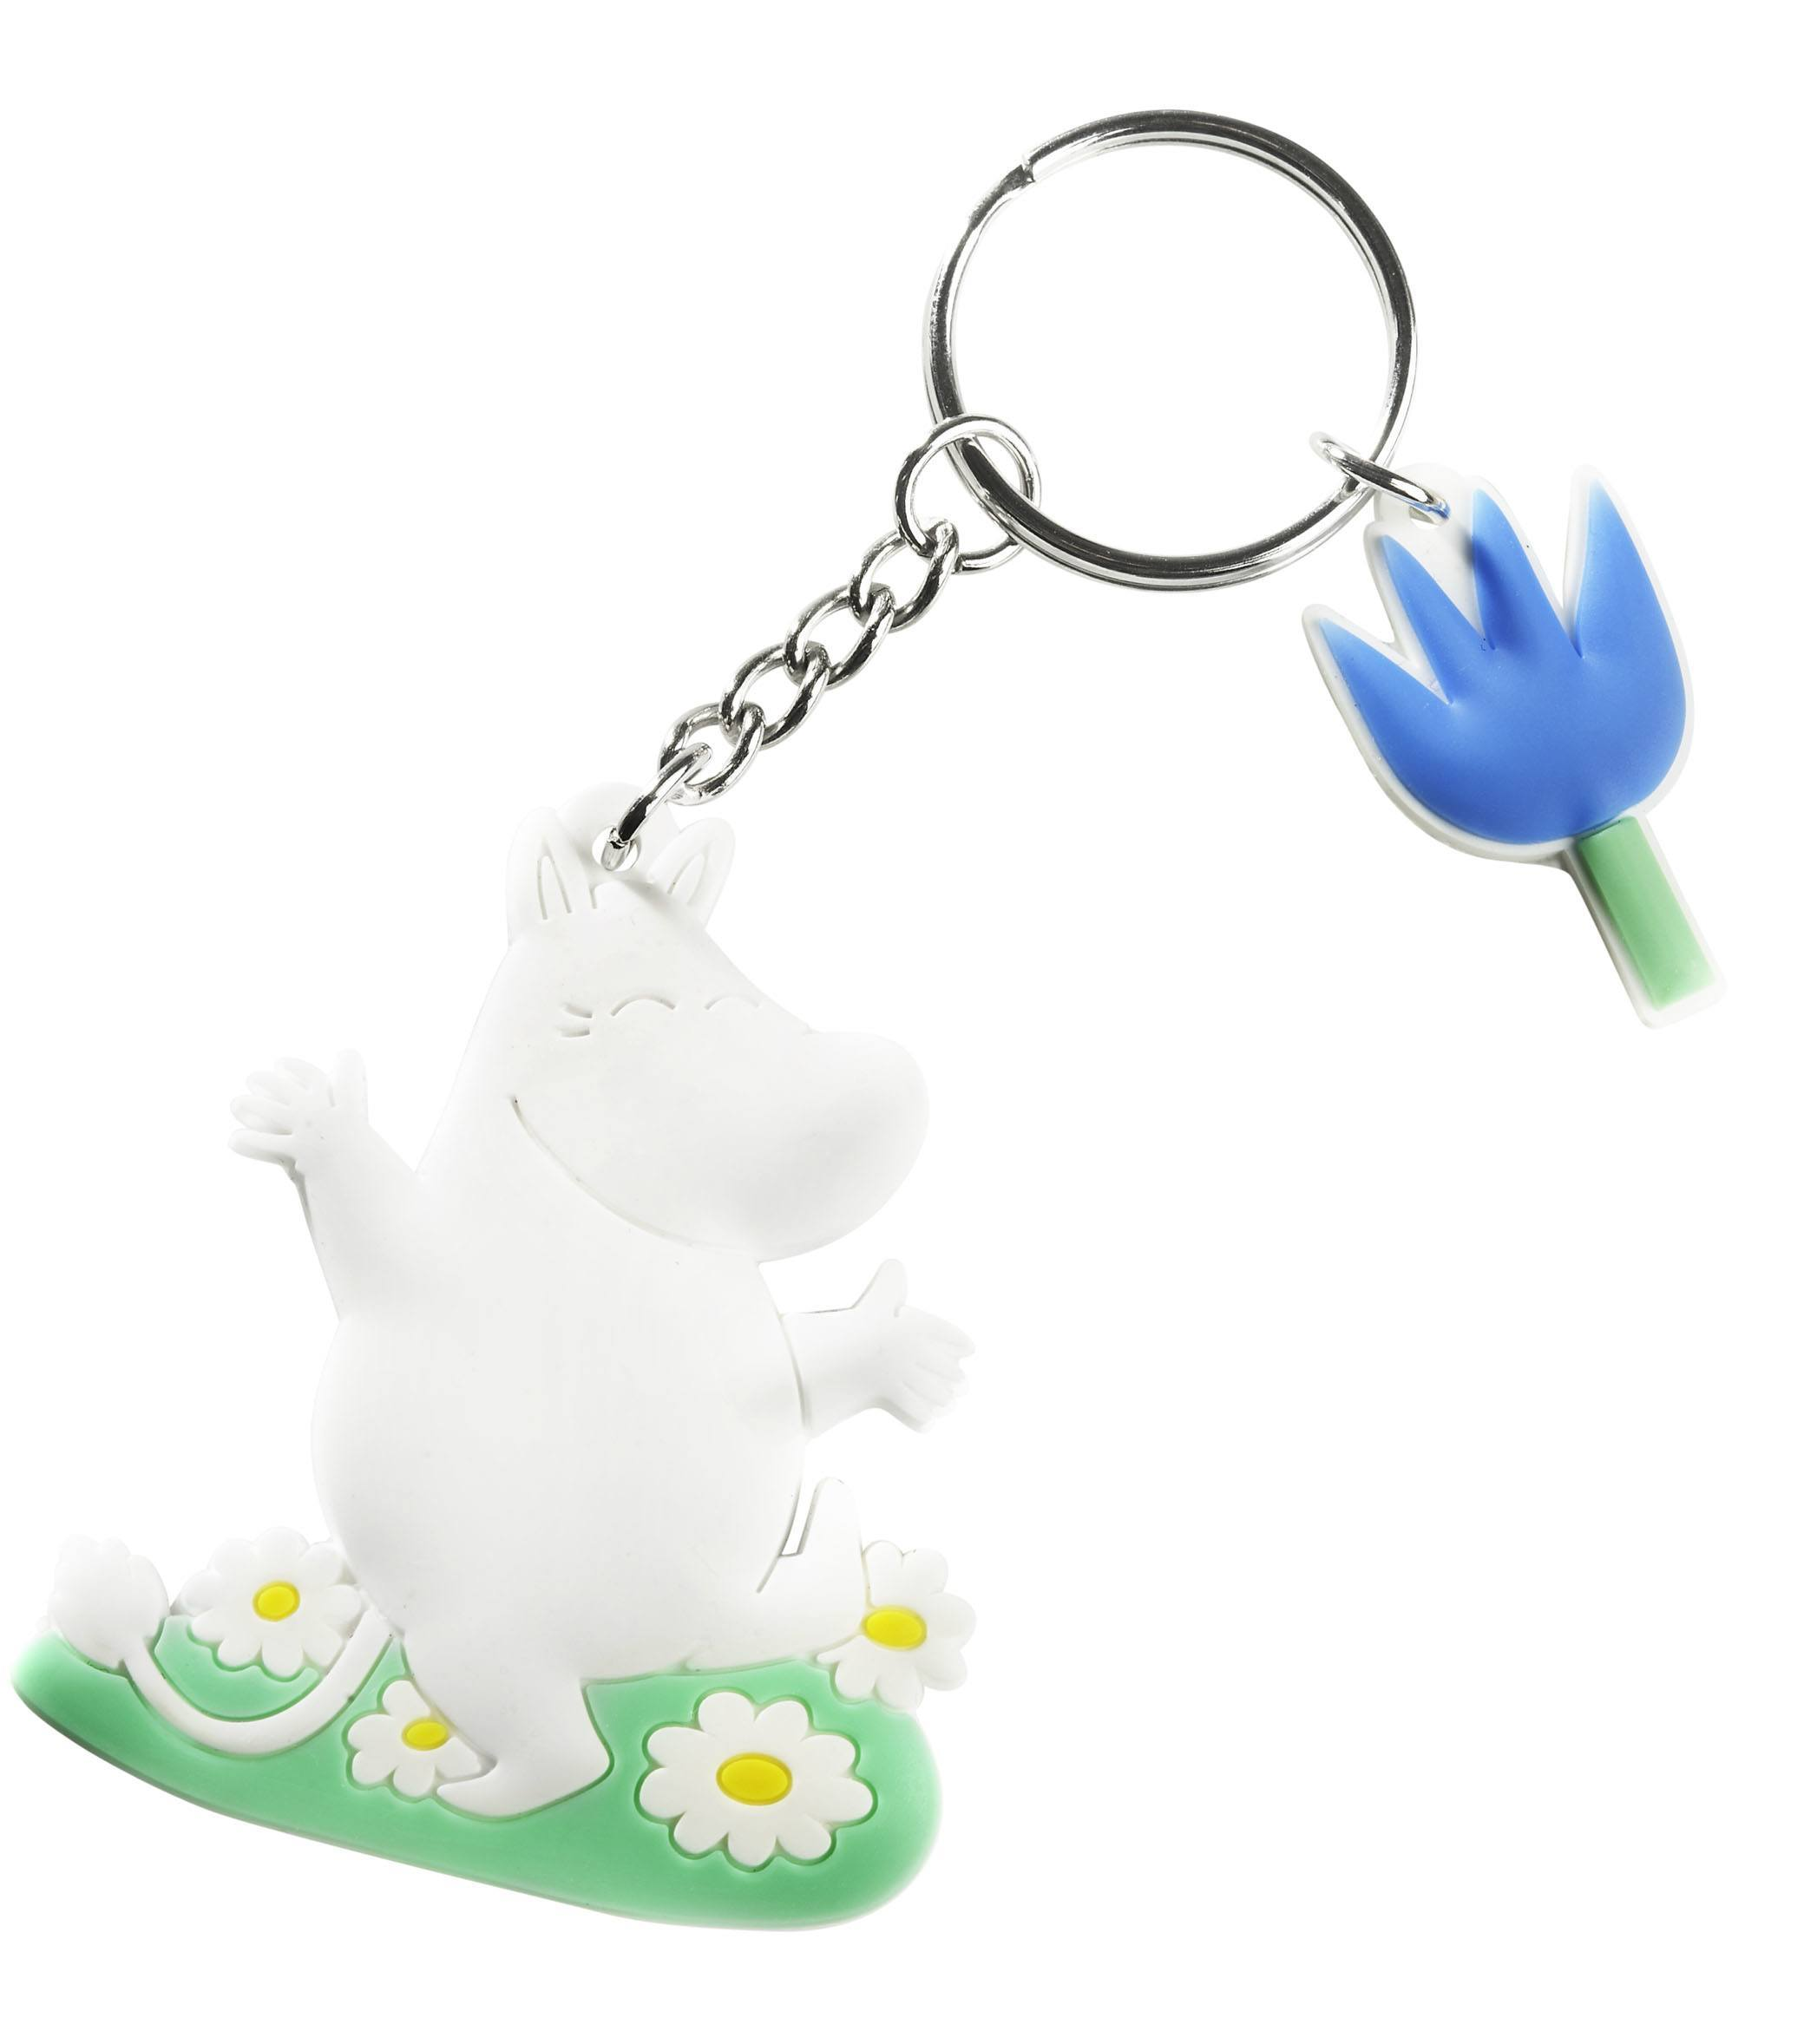 CAILAP KEY RING WITH MOOMIN